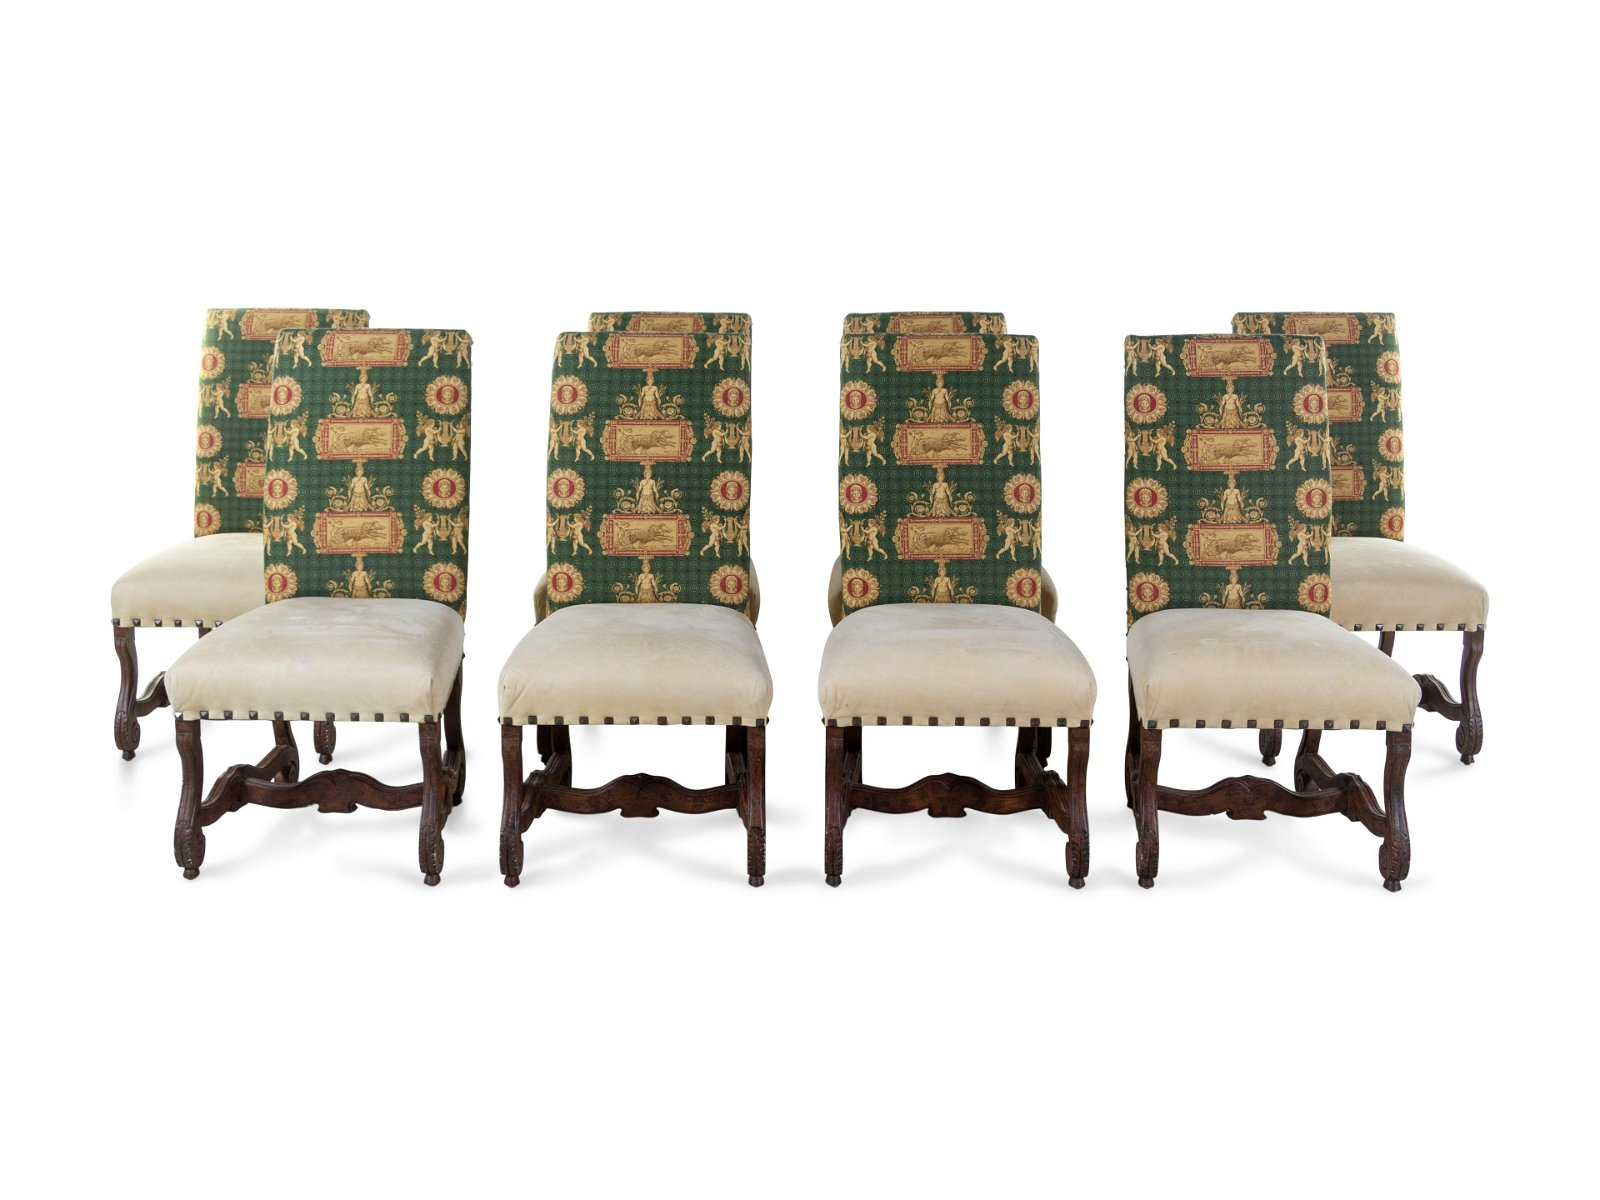 A Set of Eight Louis XIII Style Upholstered Dining